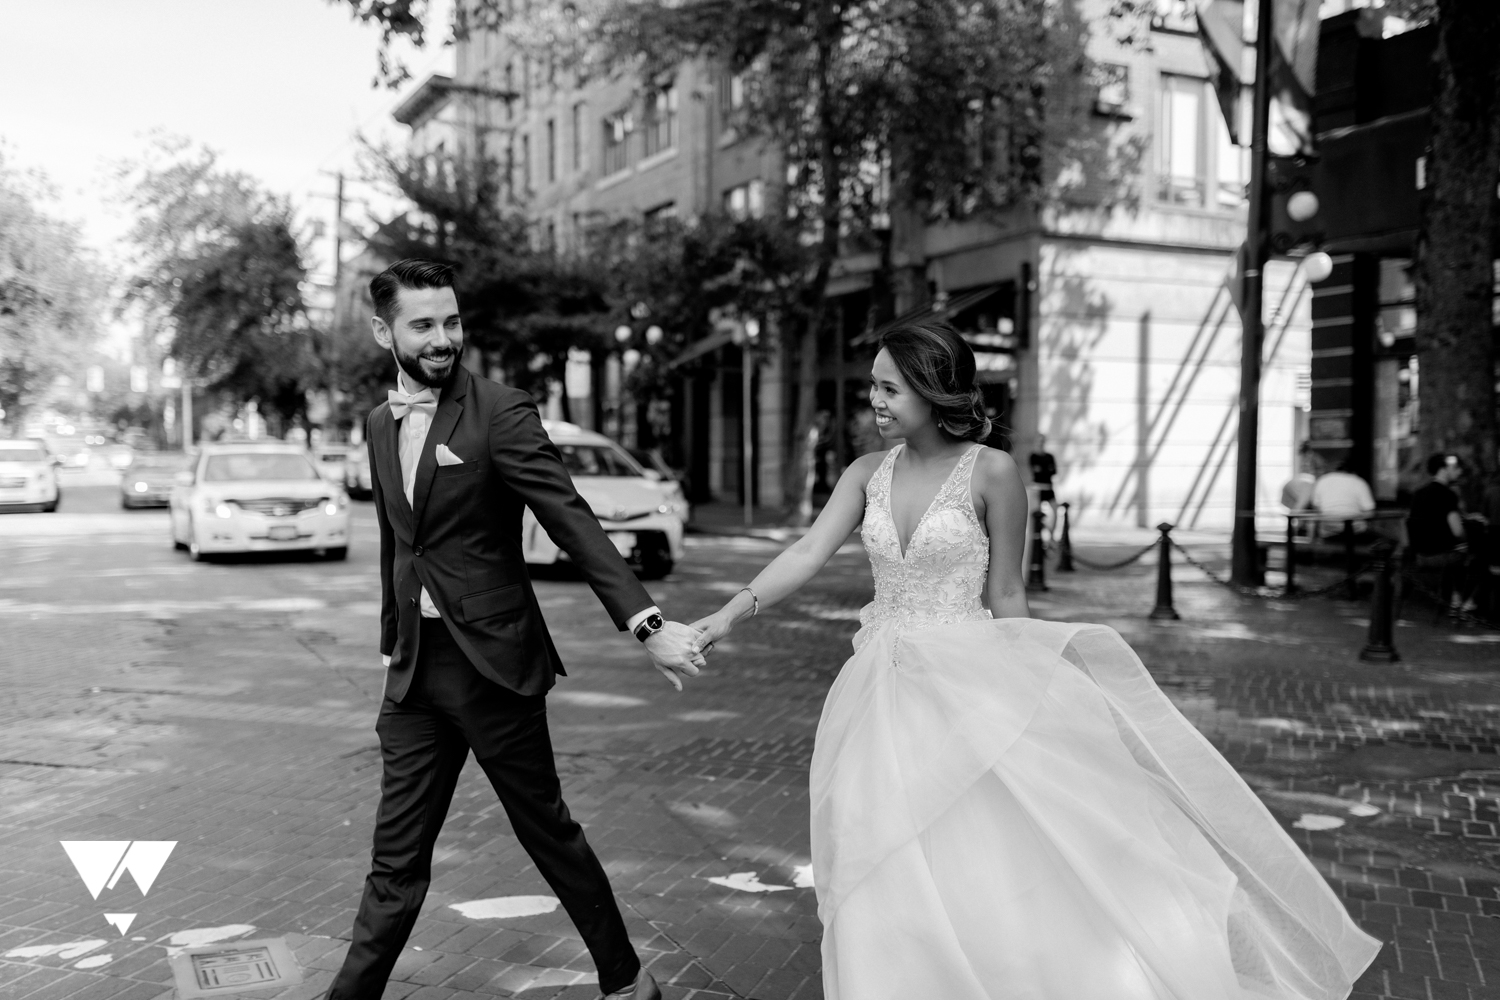 herastudios_wedding_nicole_michael_hera_selects_web-54.jpg